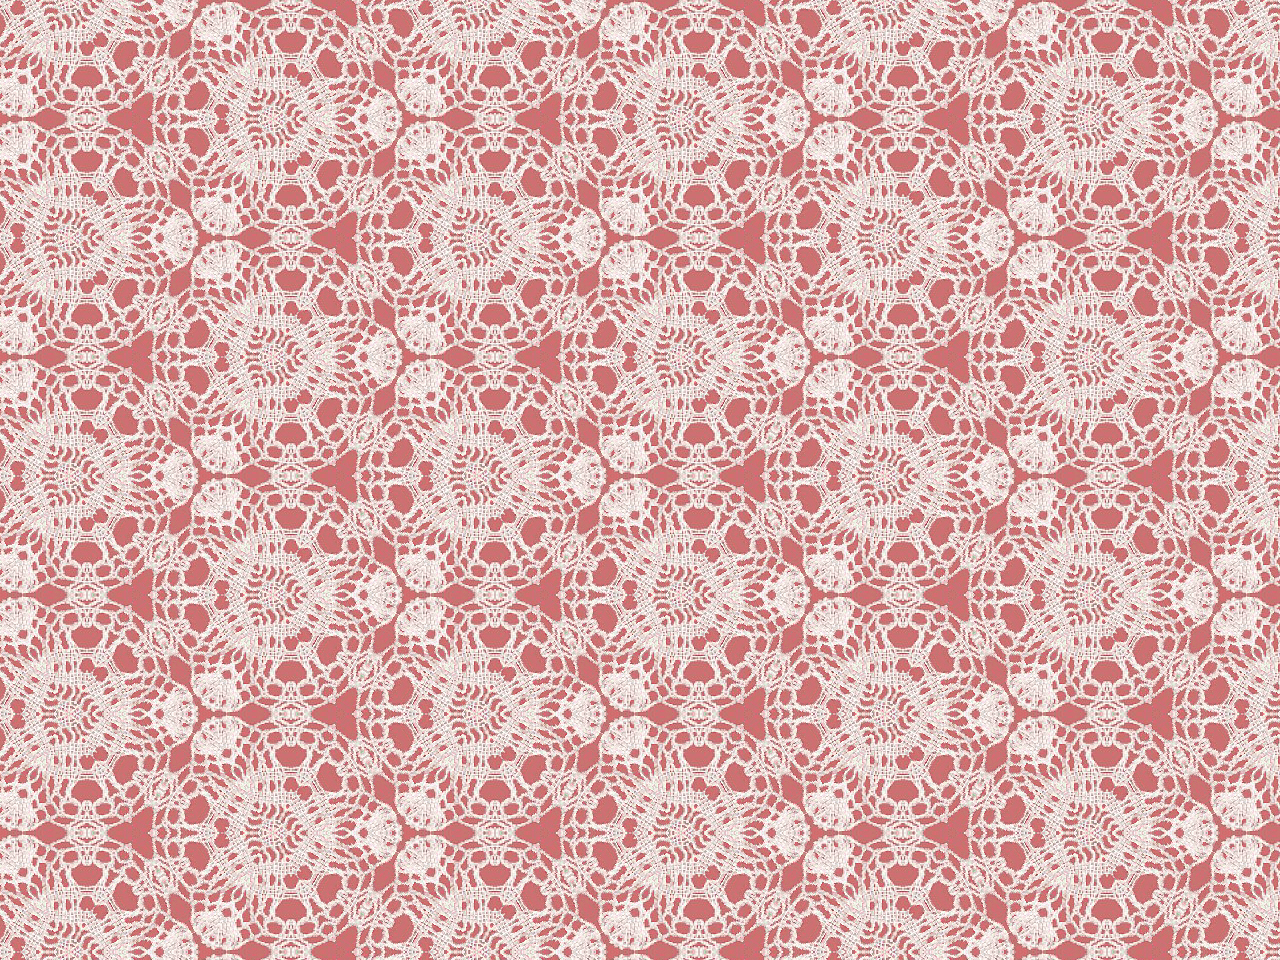 Lace fabric clipart graphic black and white download ArtbyJean - Images of Lace: OFF WHITE LACE OVER OLD ROSE ... graphic black and white download